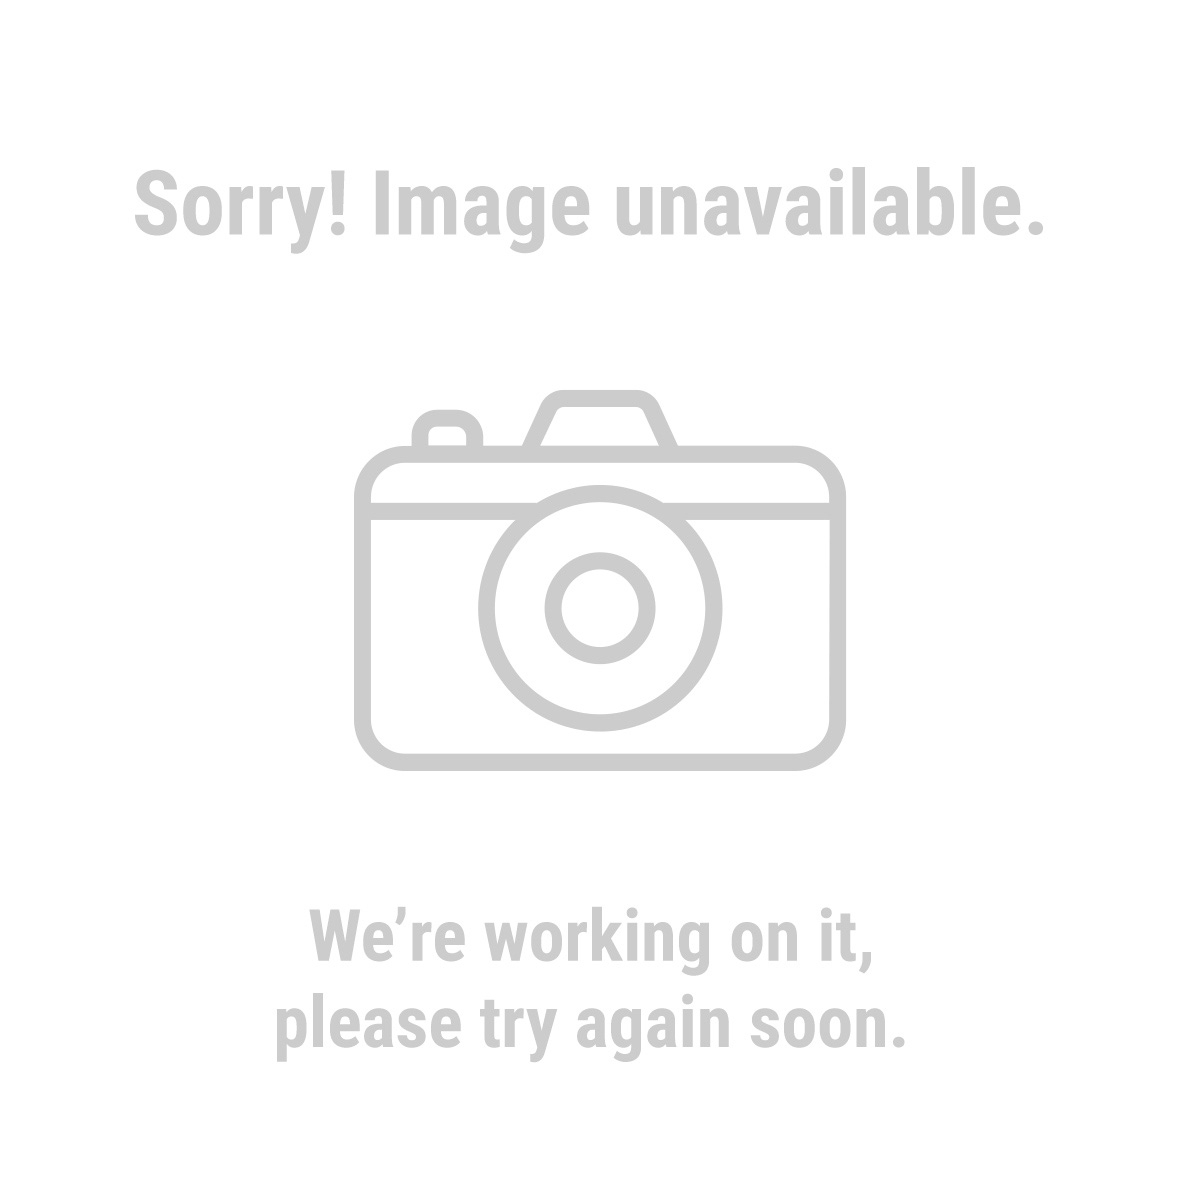 Pittsburgh Professional 69519 8 Piece 3/4 in. Drive Metric Impact Socket Set